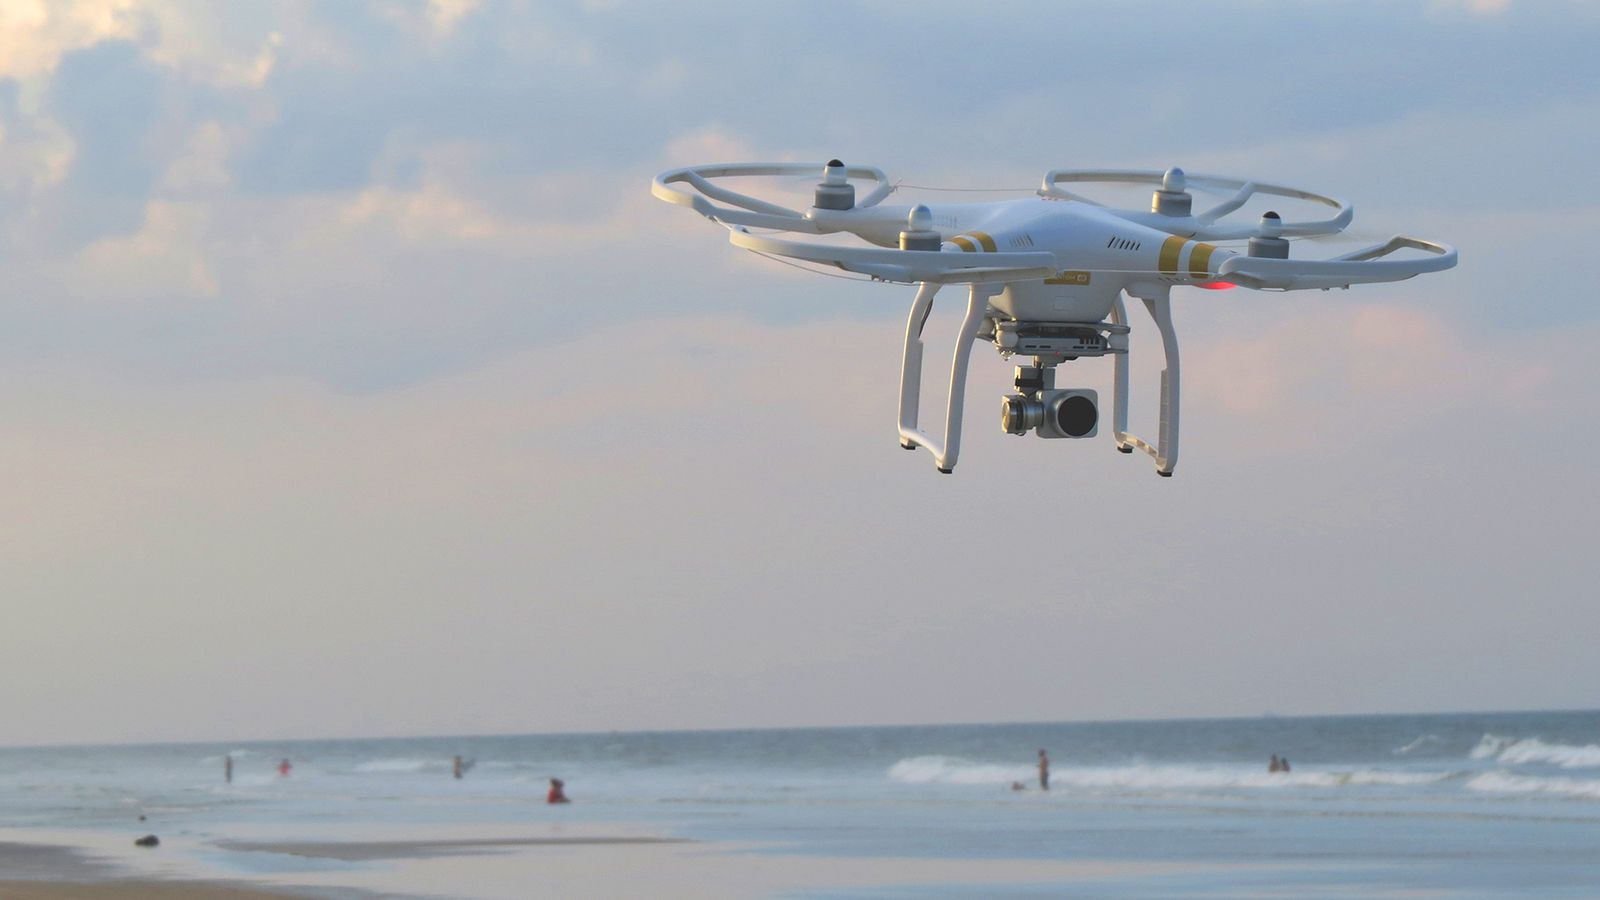 Drone ved strand